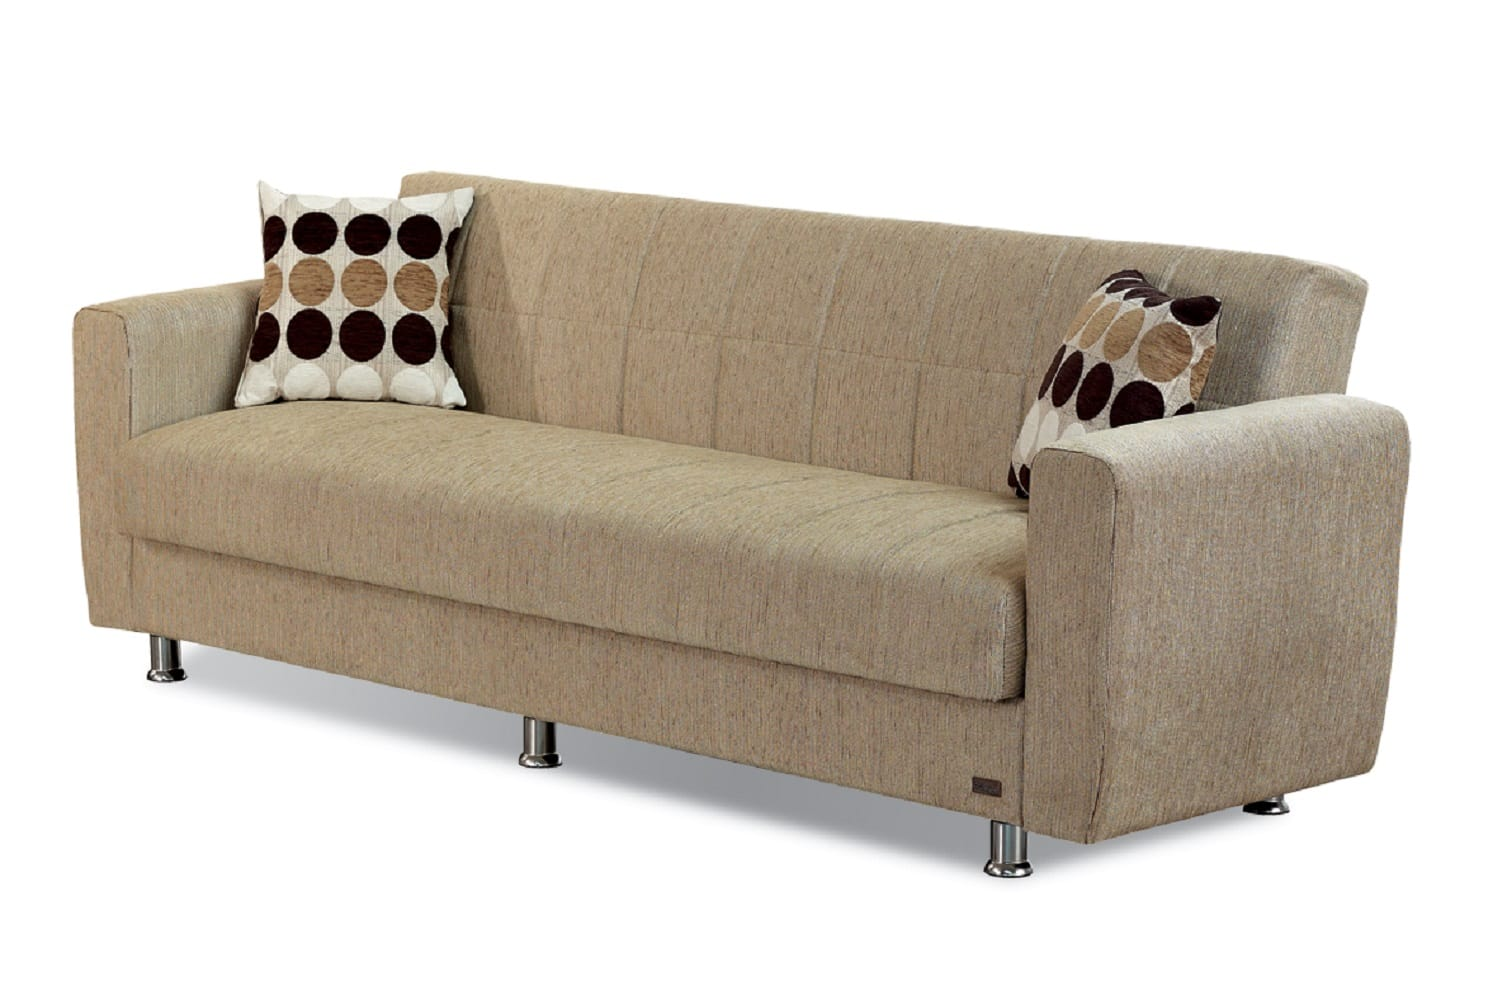 Astoria Light Brown Fabric Sofa Bed By Empire Furniture Usa